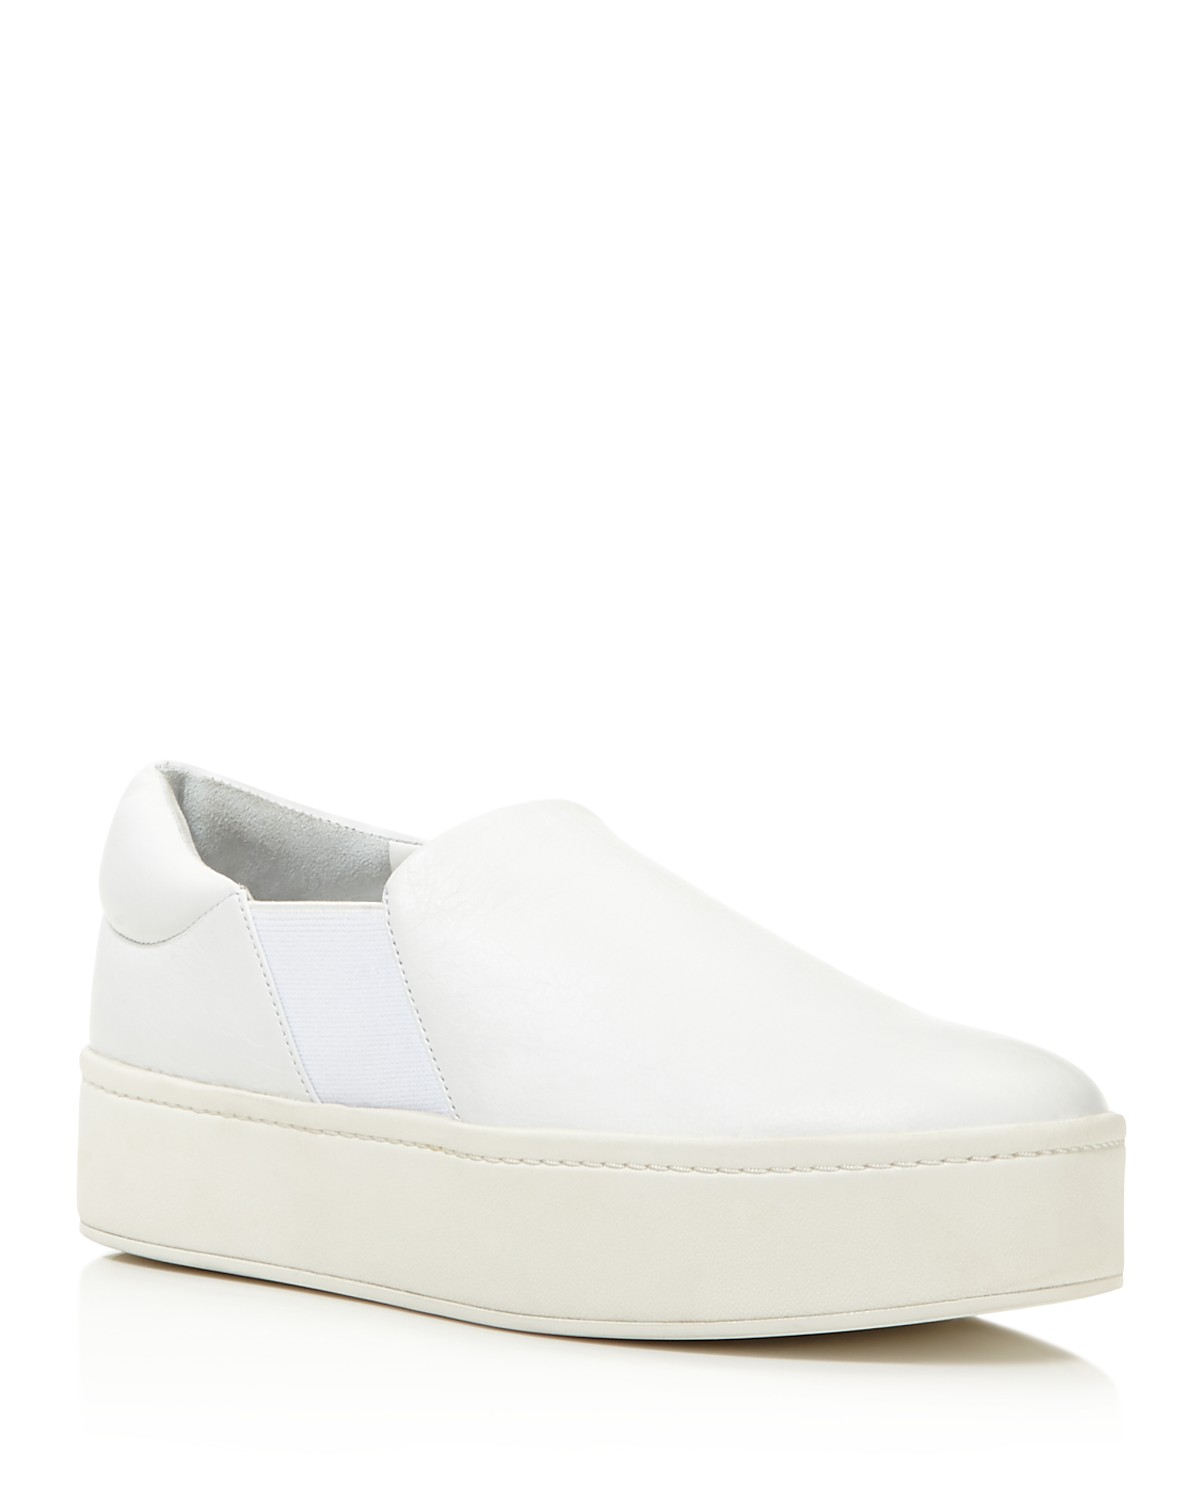 Vince Warren Leather Platform Slip-On Sneakers Clearance Visit New Low Cost Sale Online Cheap Fashionable Free Shipping Reliable Outlet Discounts fNs1MgH